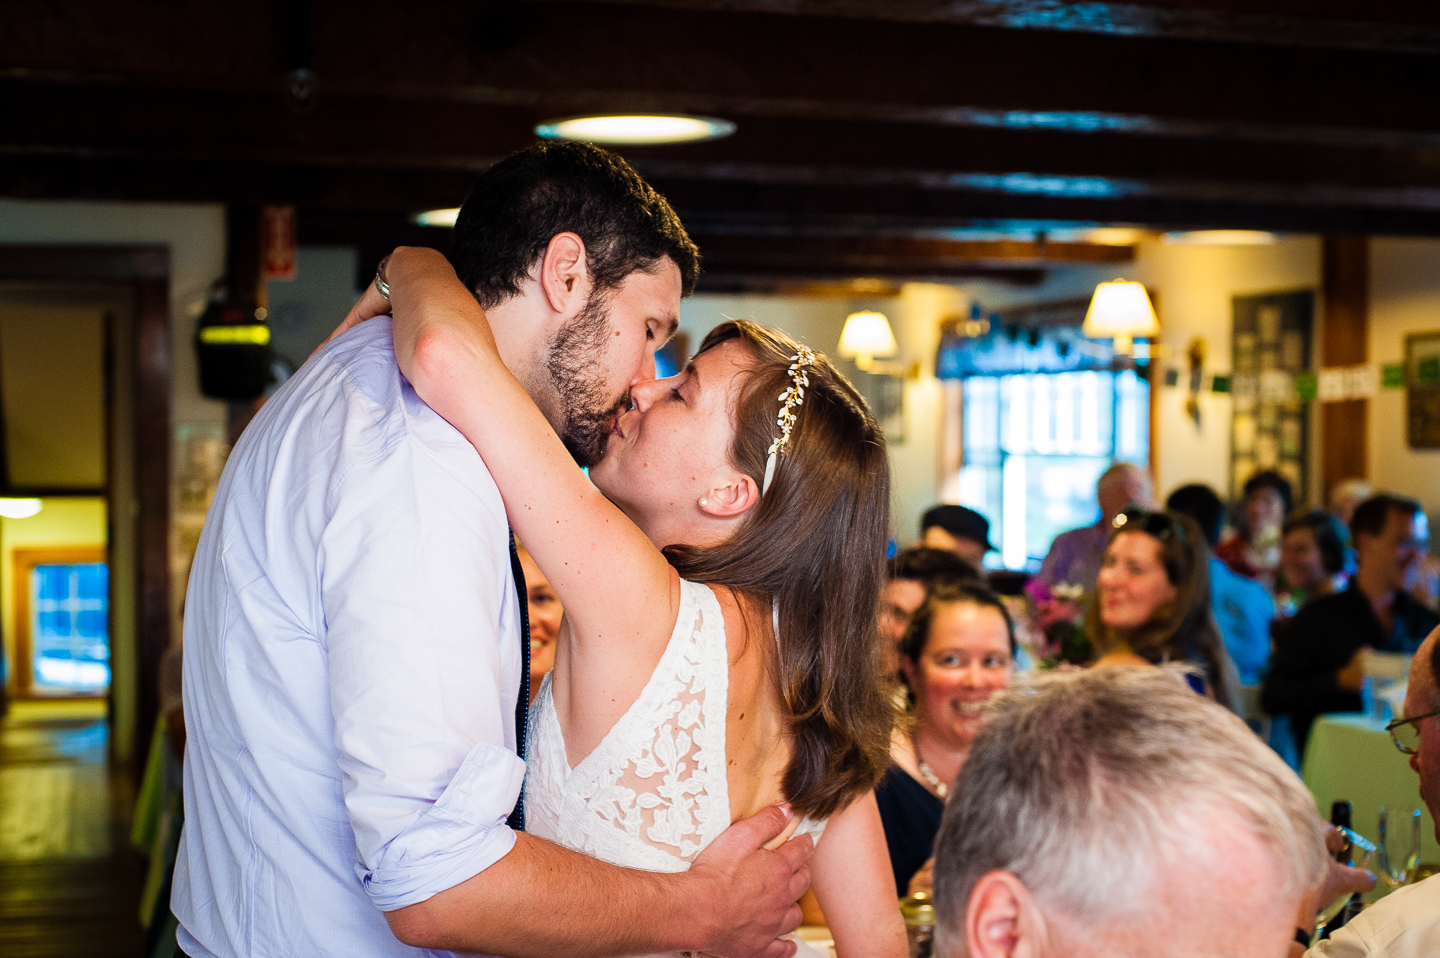 bride and groom kiss at the request of guests during their lodge style mountain wedding reception